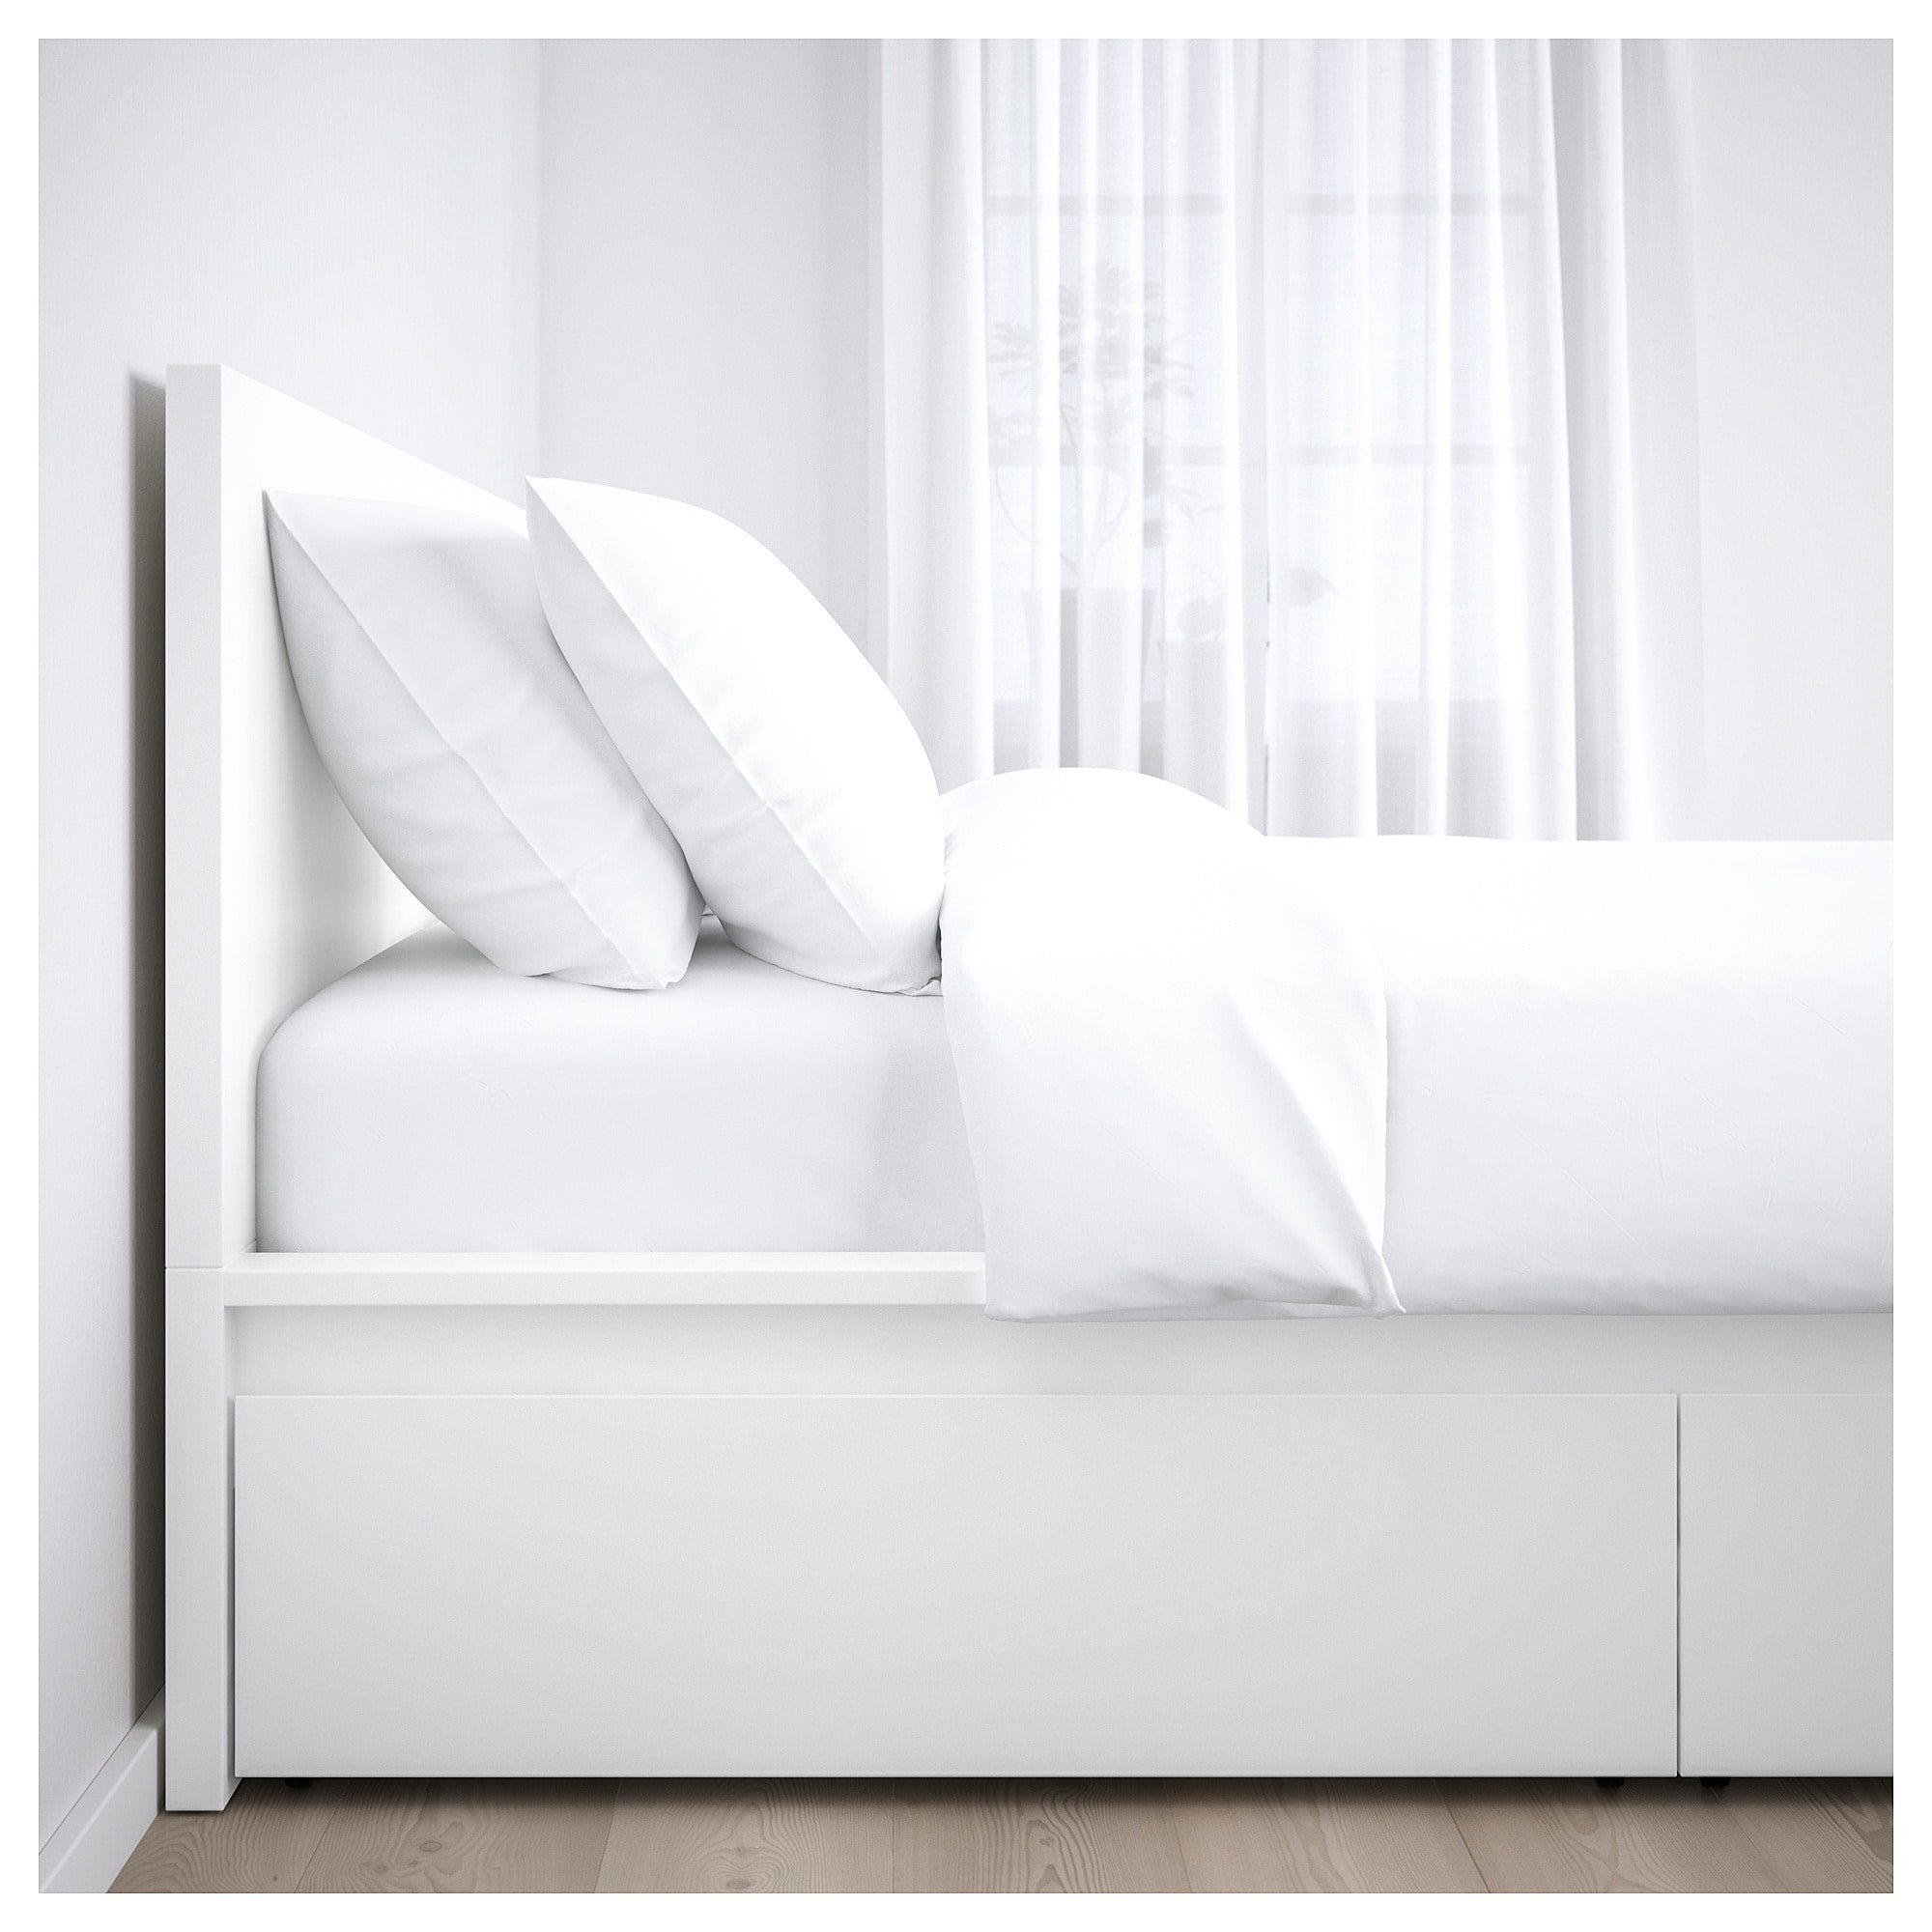 Twin Bedroom Set Ikea Awesome Ikea Malm White Luröy High Bed Frame 2 Storage Boxes